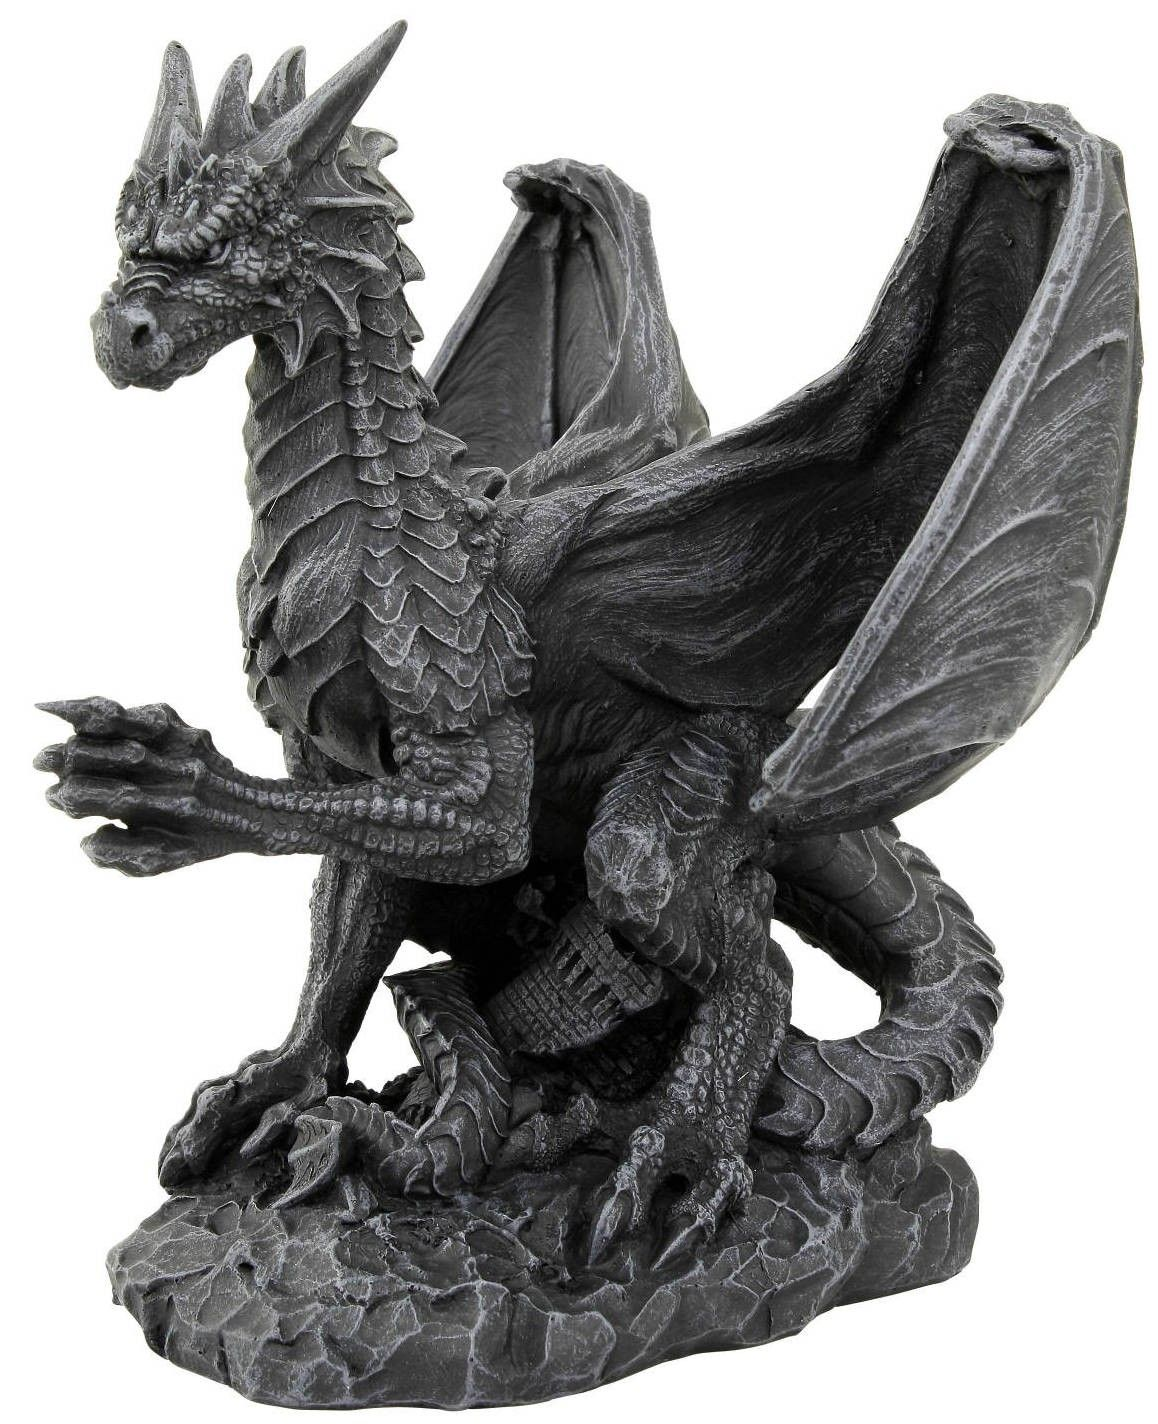 Bien-aimé Dragon en résine noir - Figurine collection | Figurines de dragons  CF02